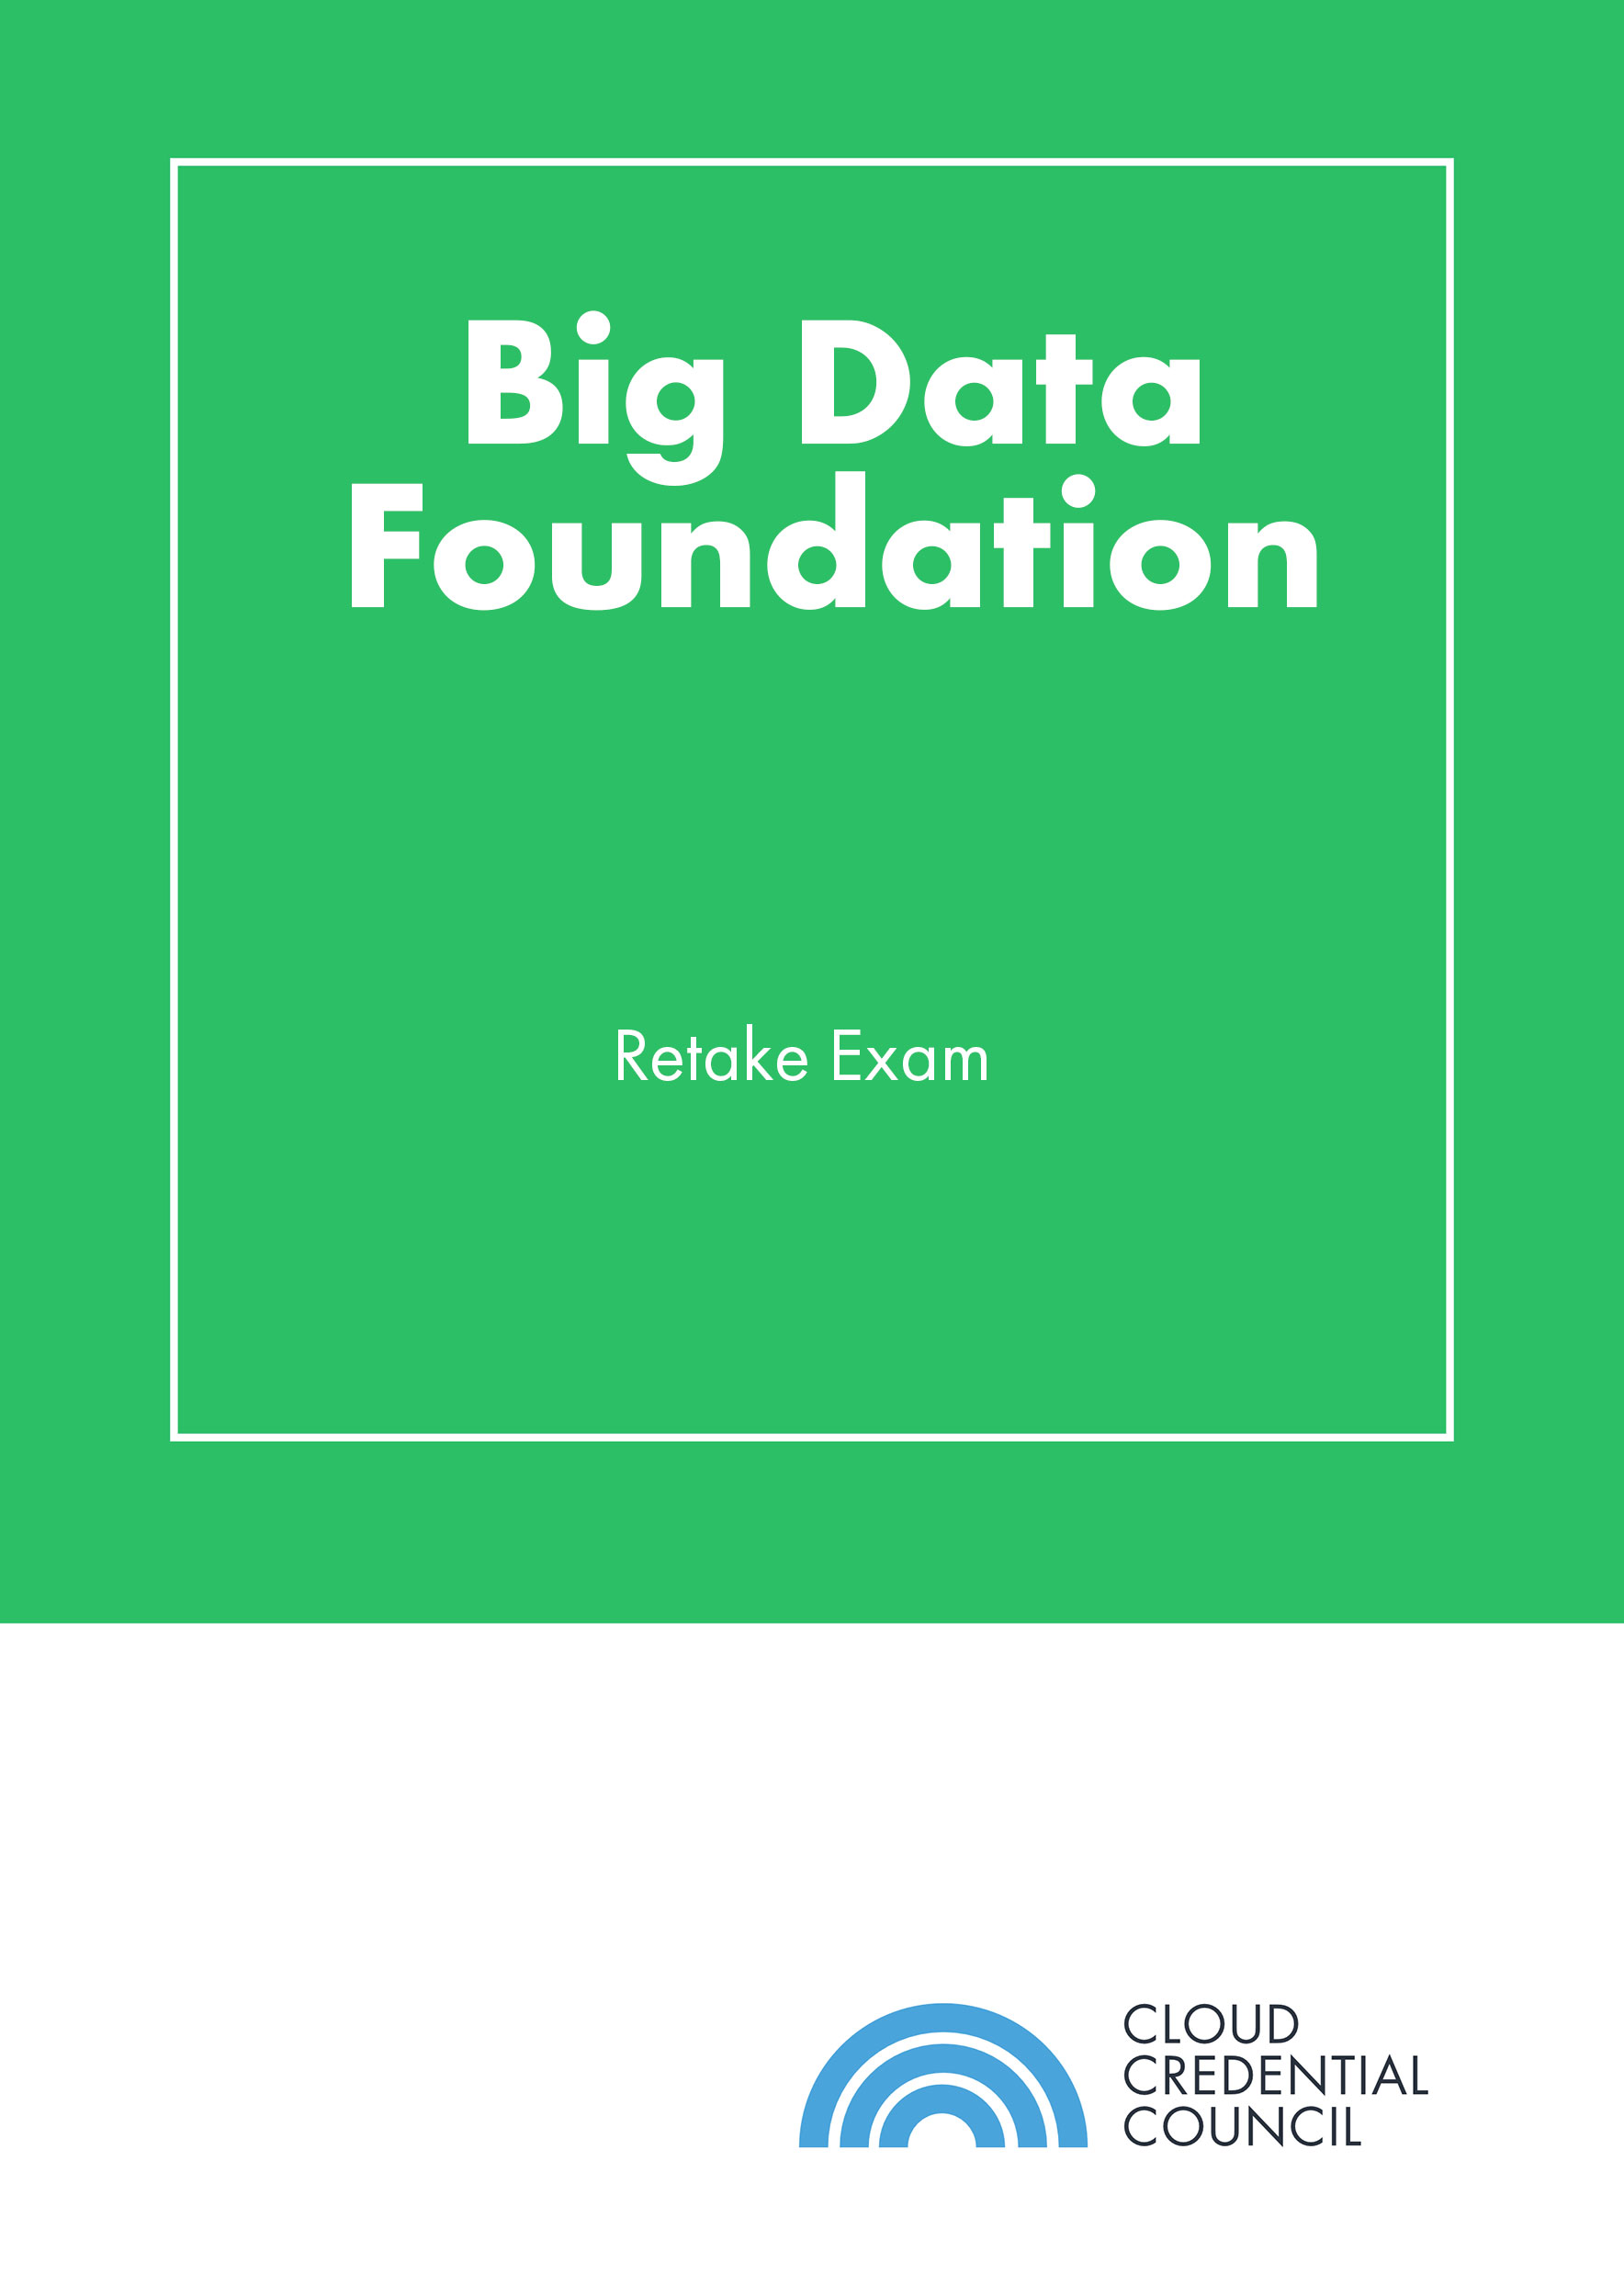 Big-Data-Foundation-Retake